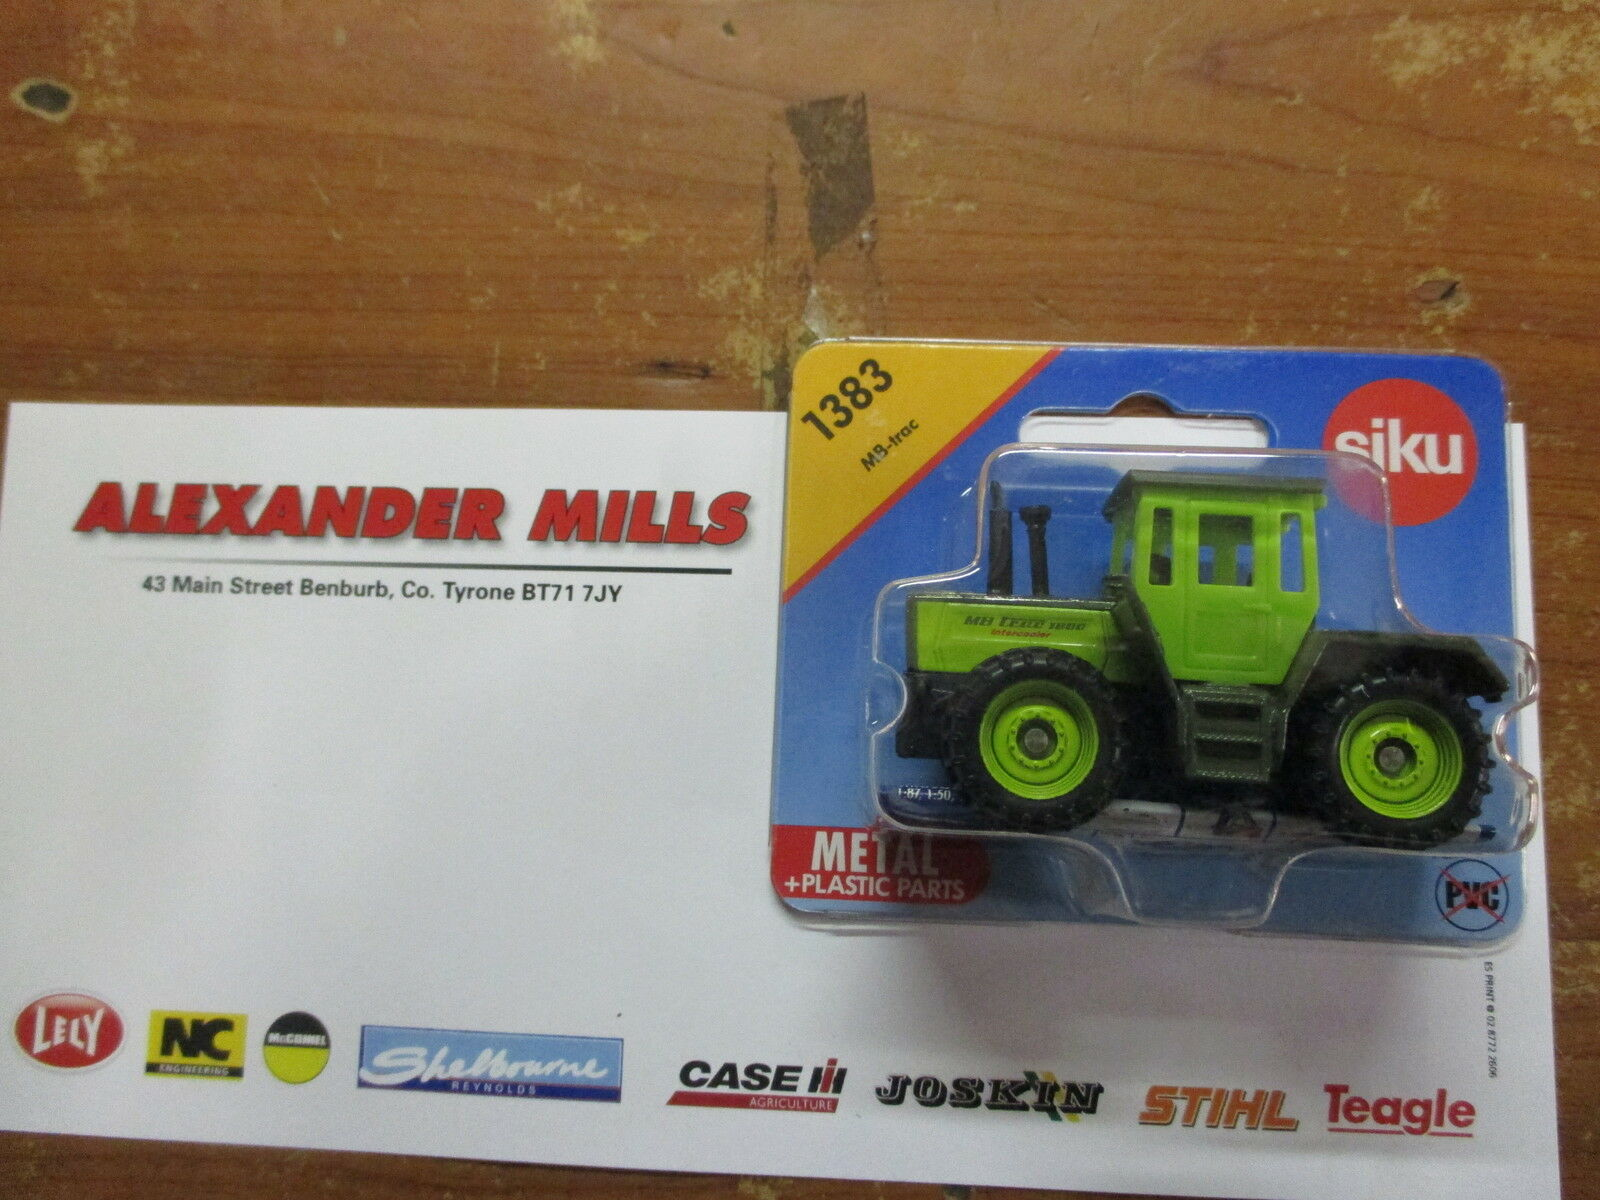 Siku 1383 Model Toy MB Tractor Replica Toy Diecast Model Model Model Agri Farm Toy 248035